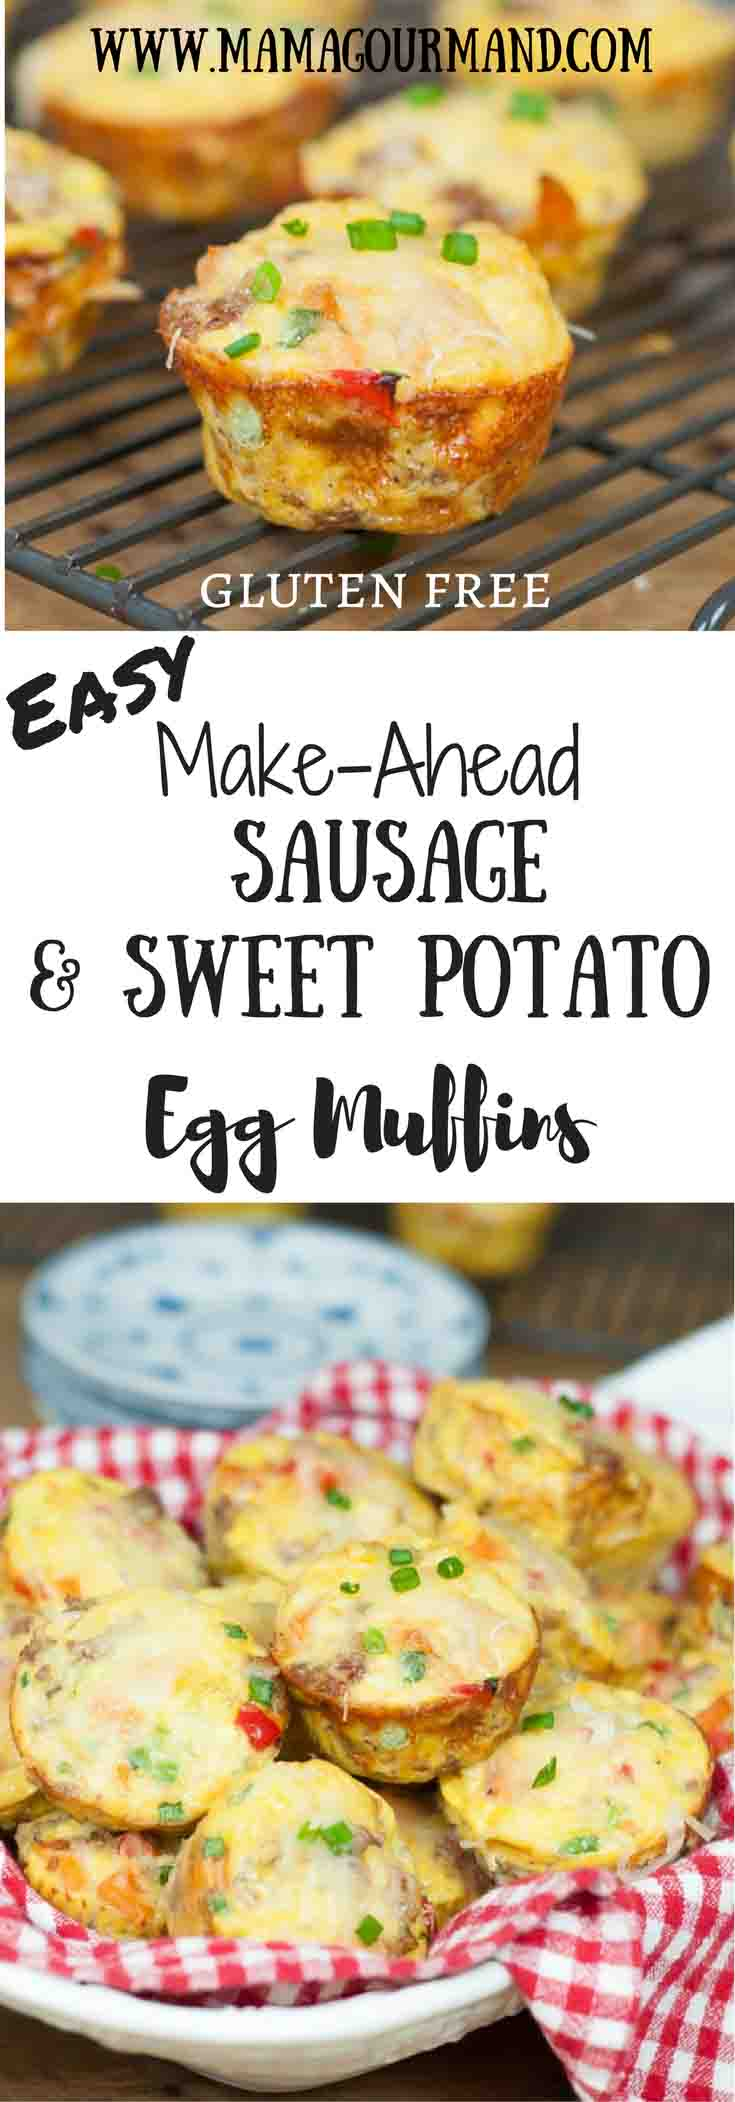 Make Ahead Sausage, Sweet Potato, Egg Muffins is a perfect all-in-one muffin egg cup you can easily reheat for holiday breakfasts, brunch, or busy mornings. #makeahead #eggmuffins #glutenfreebreakfast #easybreakfast https://www.mamagourmand.com